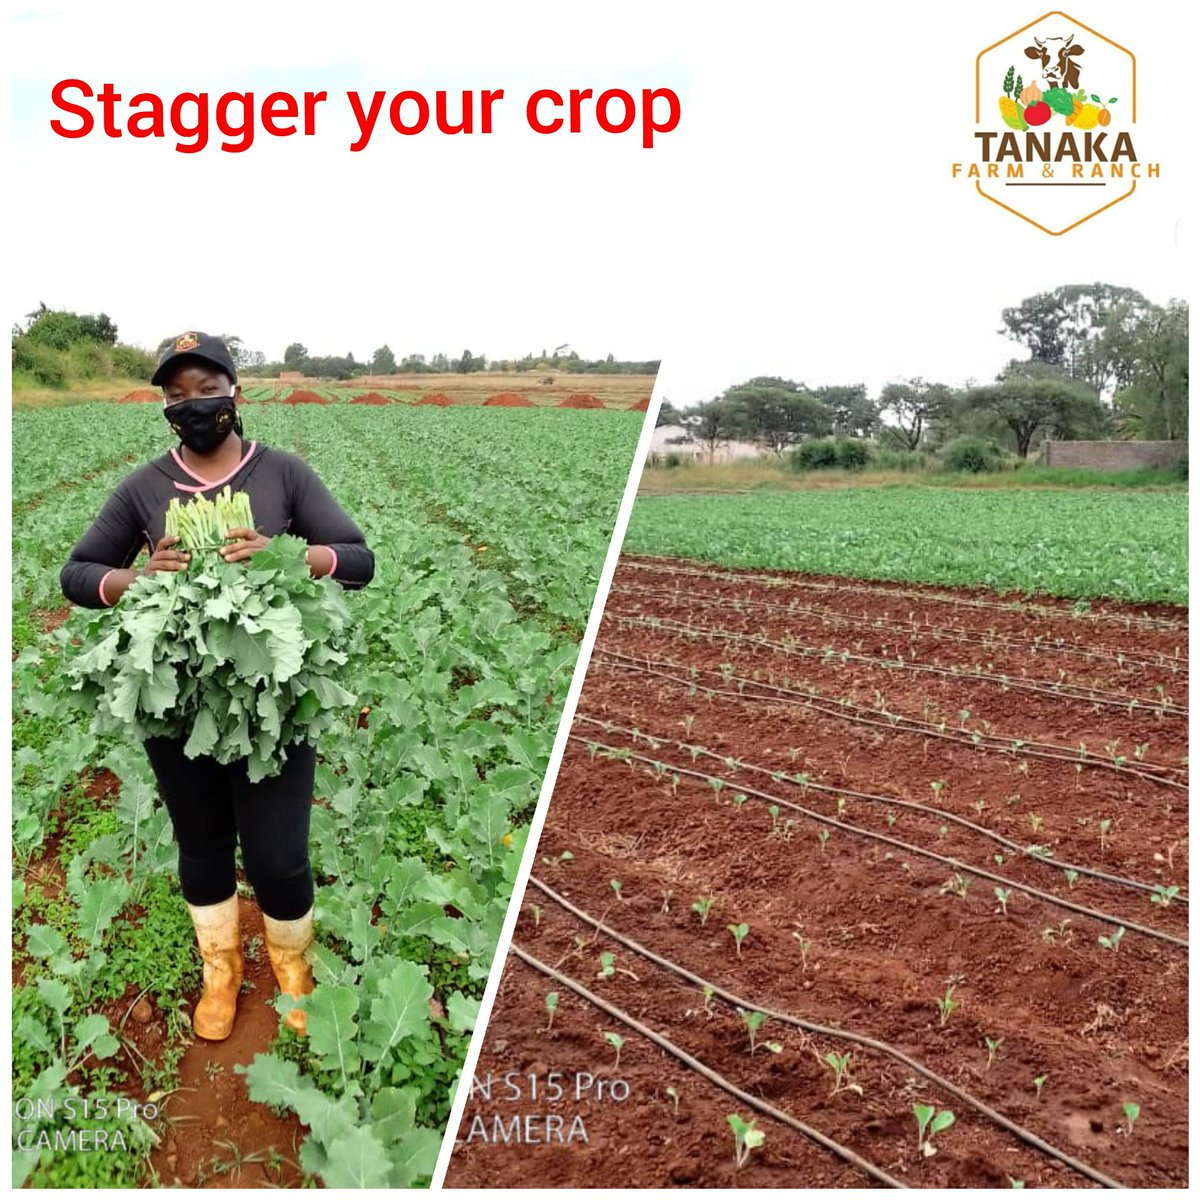 Nothing hurts more than losing potential income when buyers want your produce and you have run out because you did not plan your planting schedule well. Stagger your crop so that EVERY DAY you go to market, remember you can have a retail arm on your farm with daily sales #farming